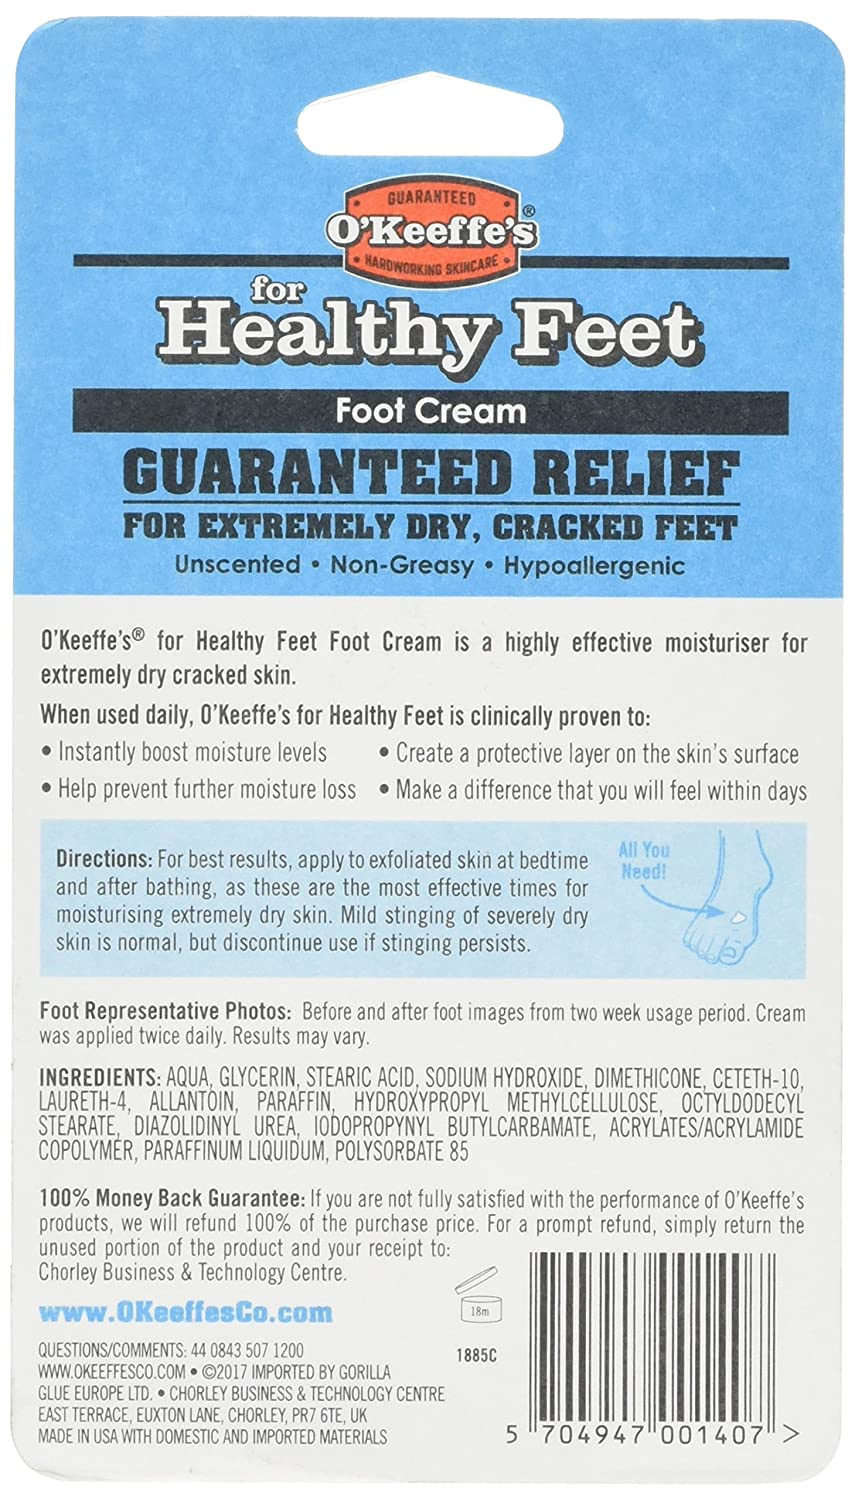 Amazoncom OKeeffes For Healthy Feet Foot Cream Oz Jar - 24 times people followed instructions way literally 6 cracked